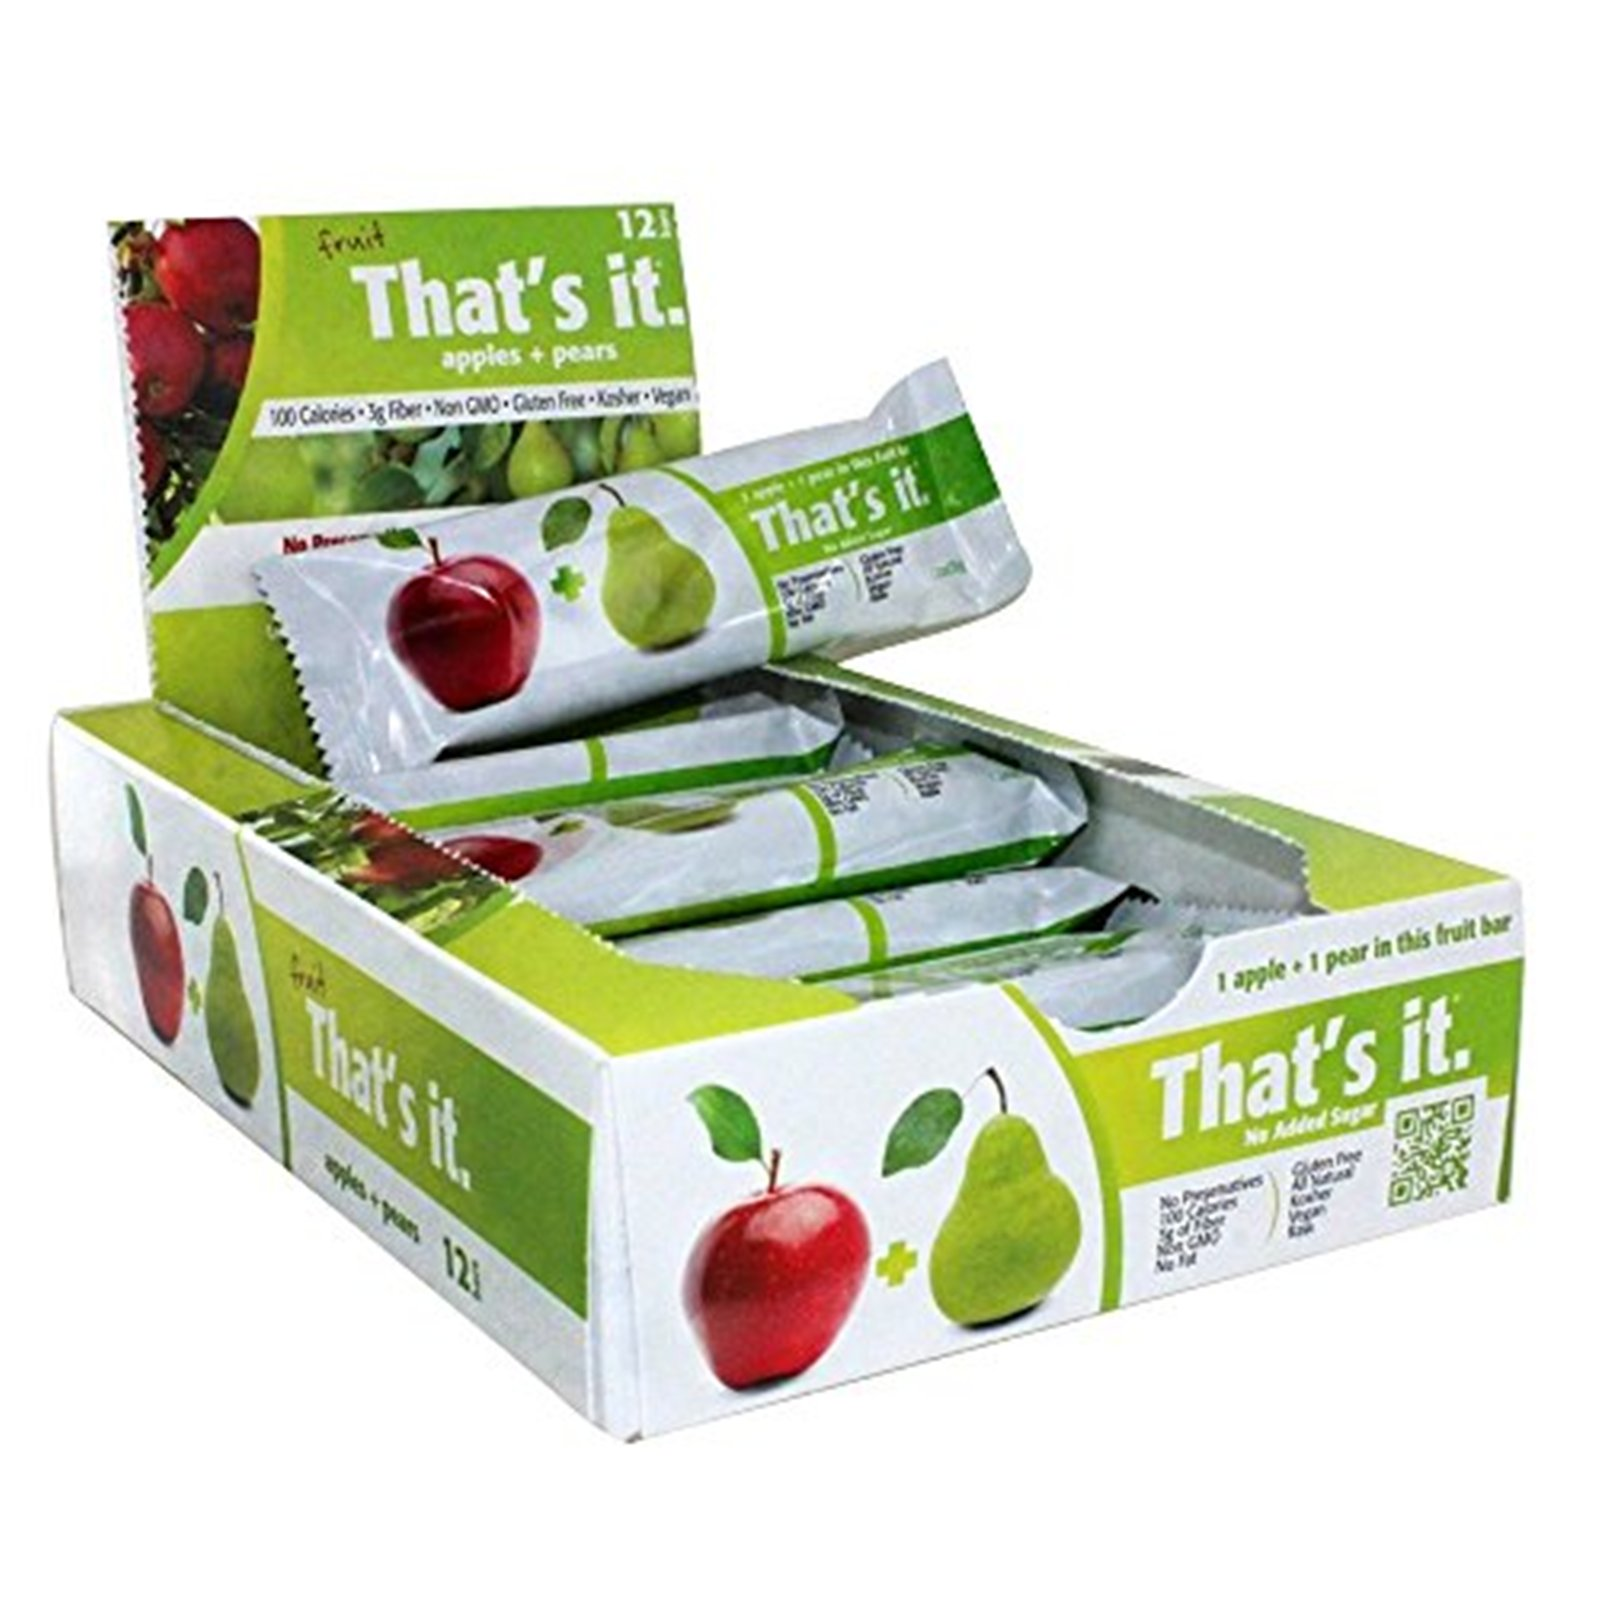 Apples + Pear Thats it. 100% Natural Real Fruit Bar, Best High Fiber Vegan, Gluten Free Healthy Snack, Paleo for Children & Adults, Non GMO Sugar-Free, No preservatives Energy Food, (12 Per Pack)